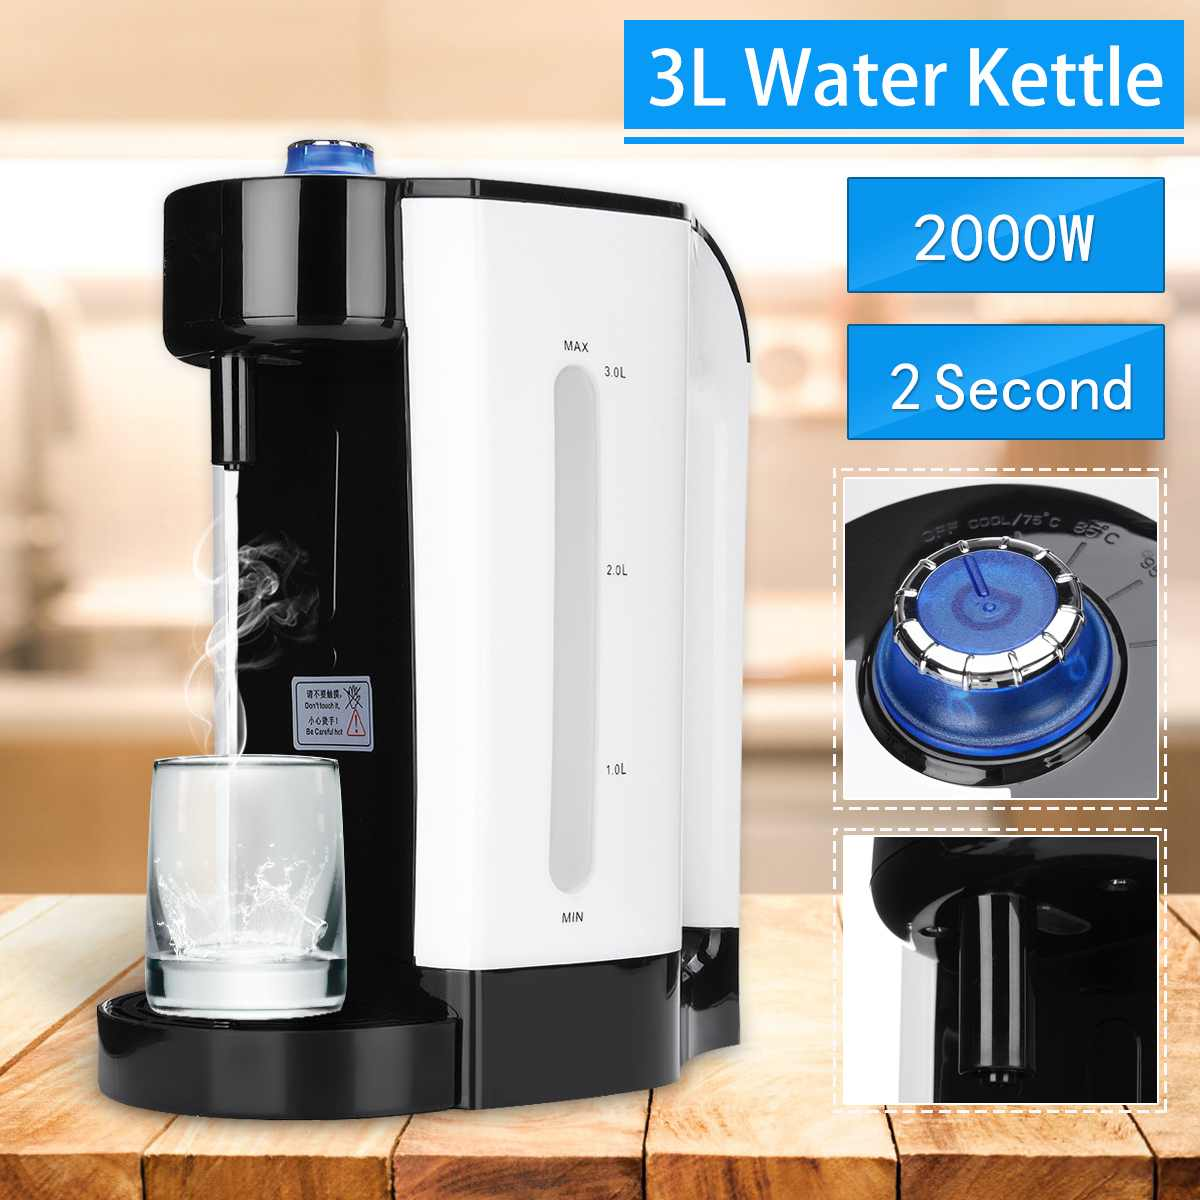 Kettle Electric Electric kettles home kitchen appliances kettle make tea Thermo Electric Air Pots El